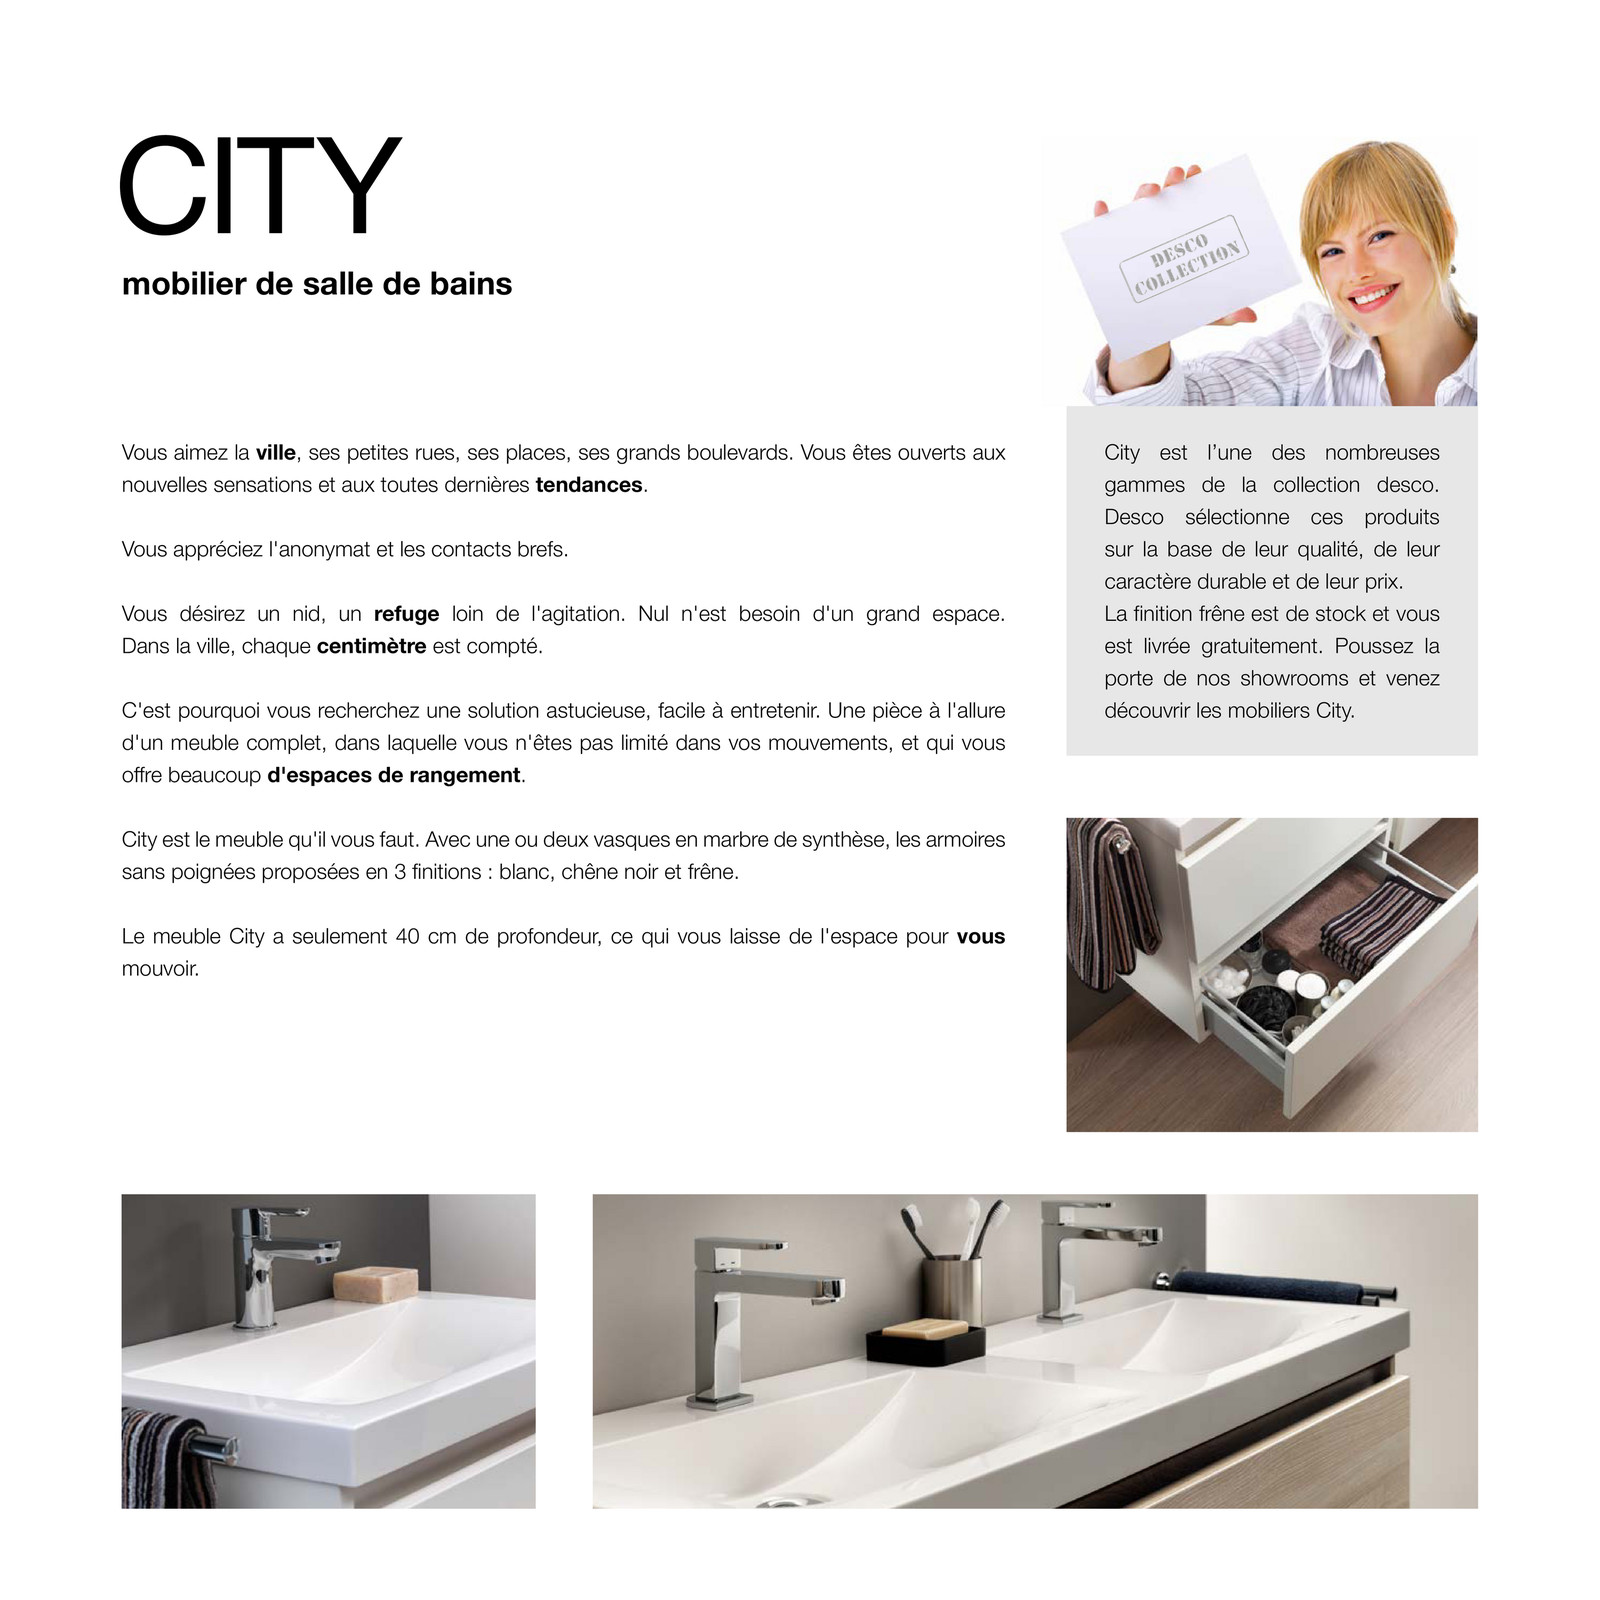 Desco city meubles page 2 3 for City meuble catalogue